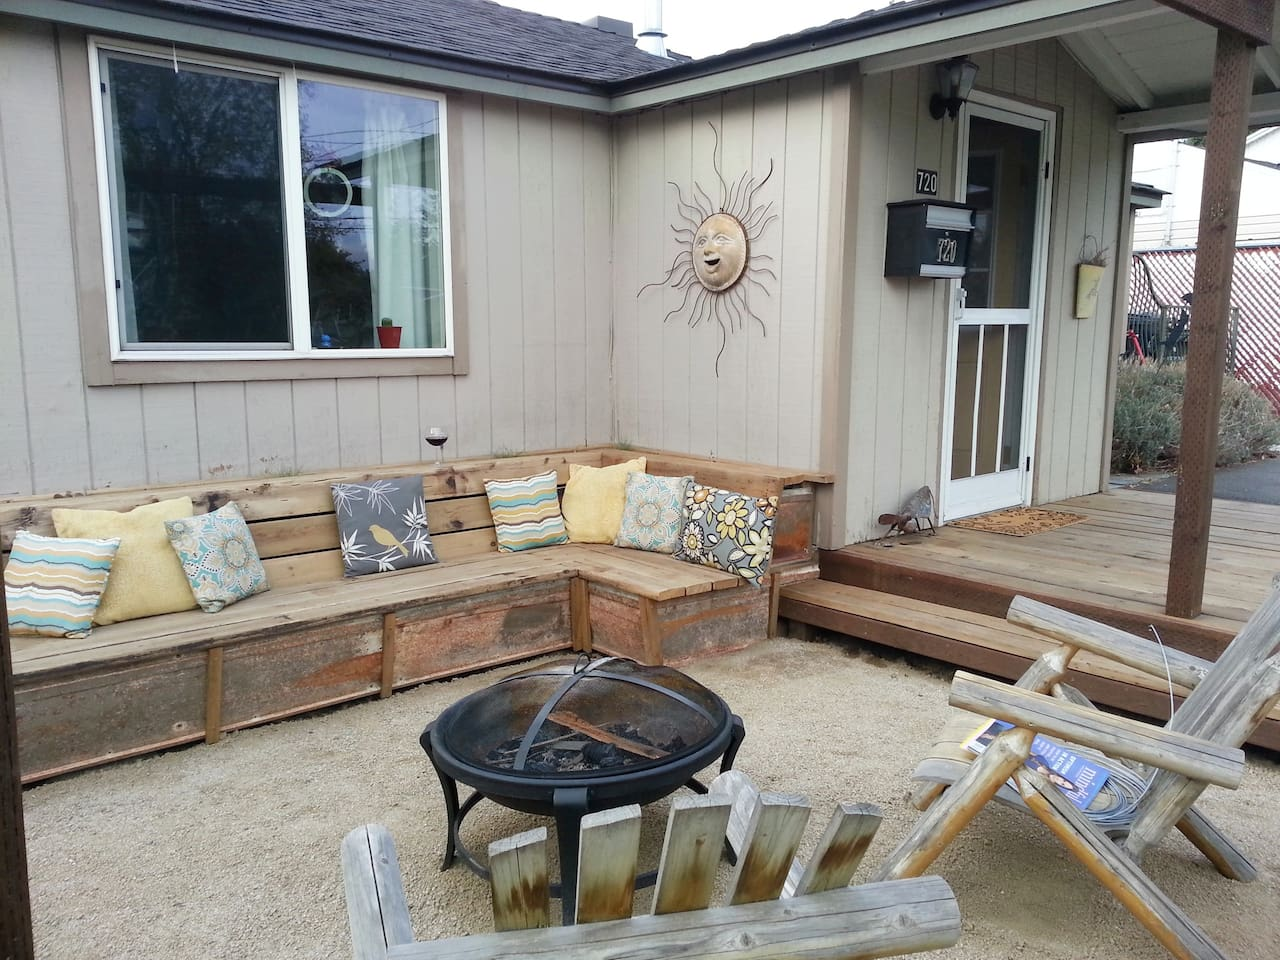 Favorite spot in the yard!  Our front porch is south facing and great for feeling the warmth of the sun!